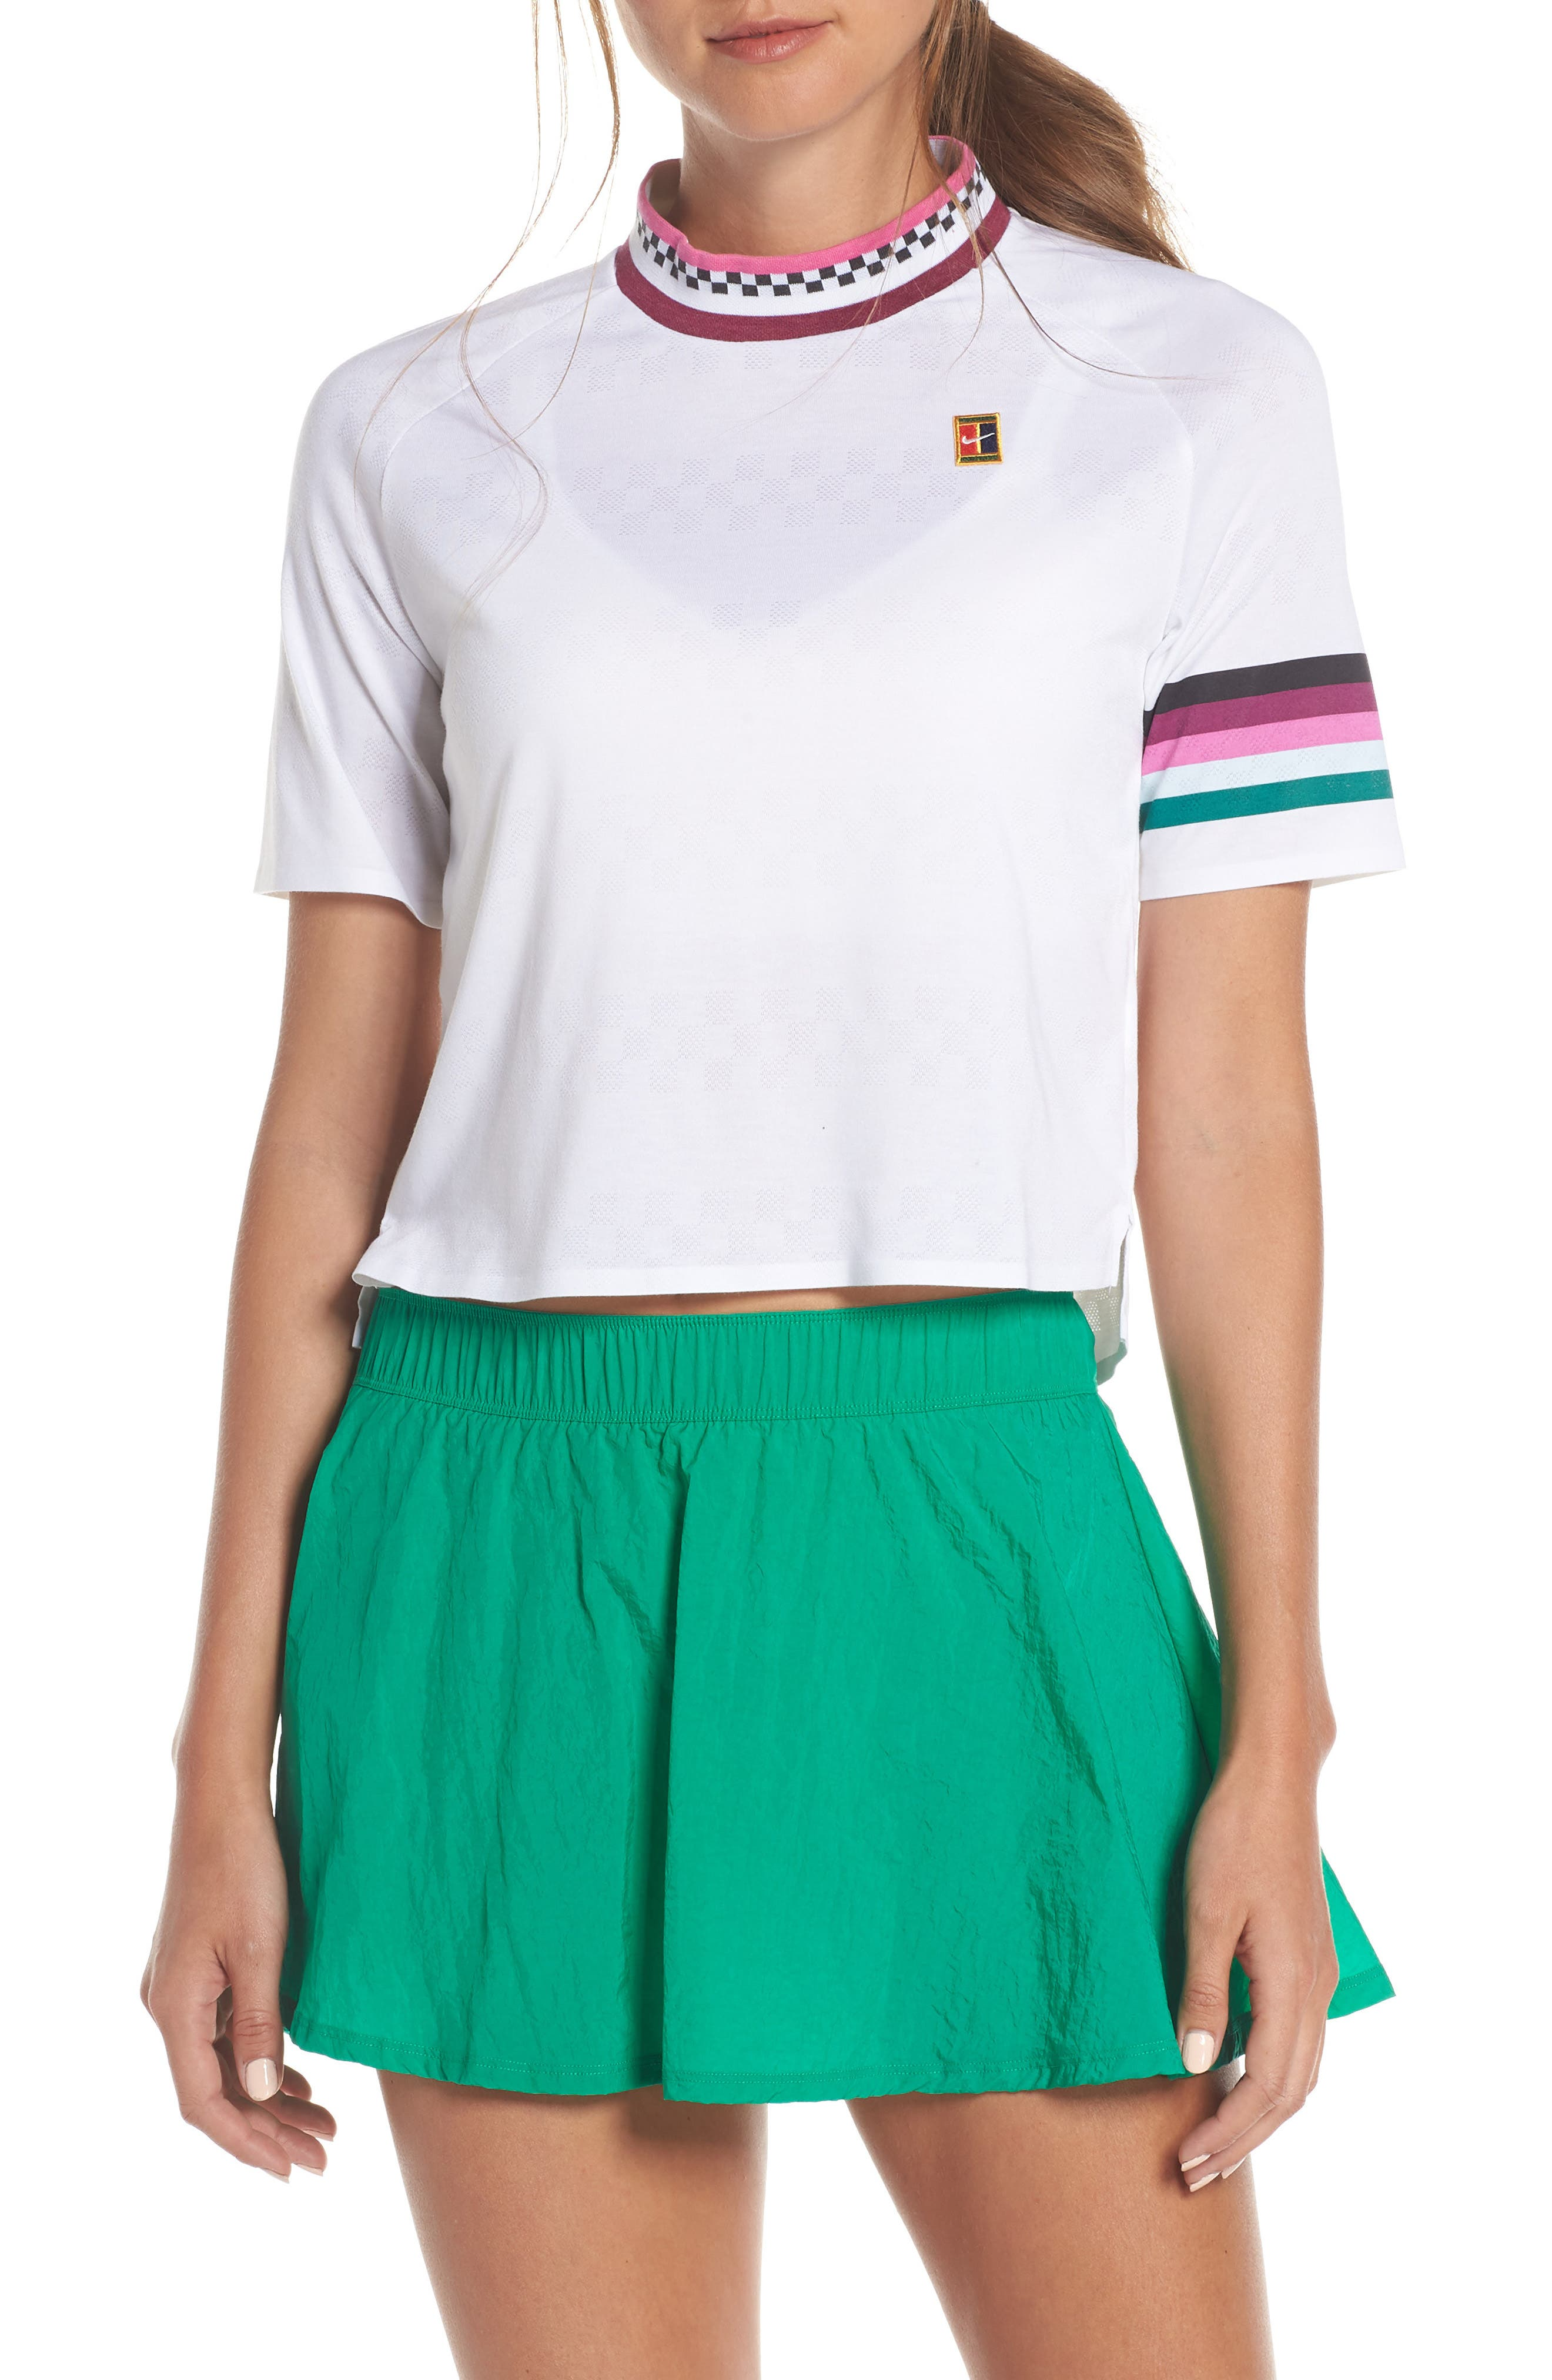 NIKE Dry Breathe Tennis Top, Main, color, WHITE/ TRUE BERRY/ GREEN